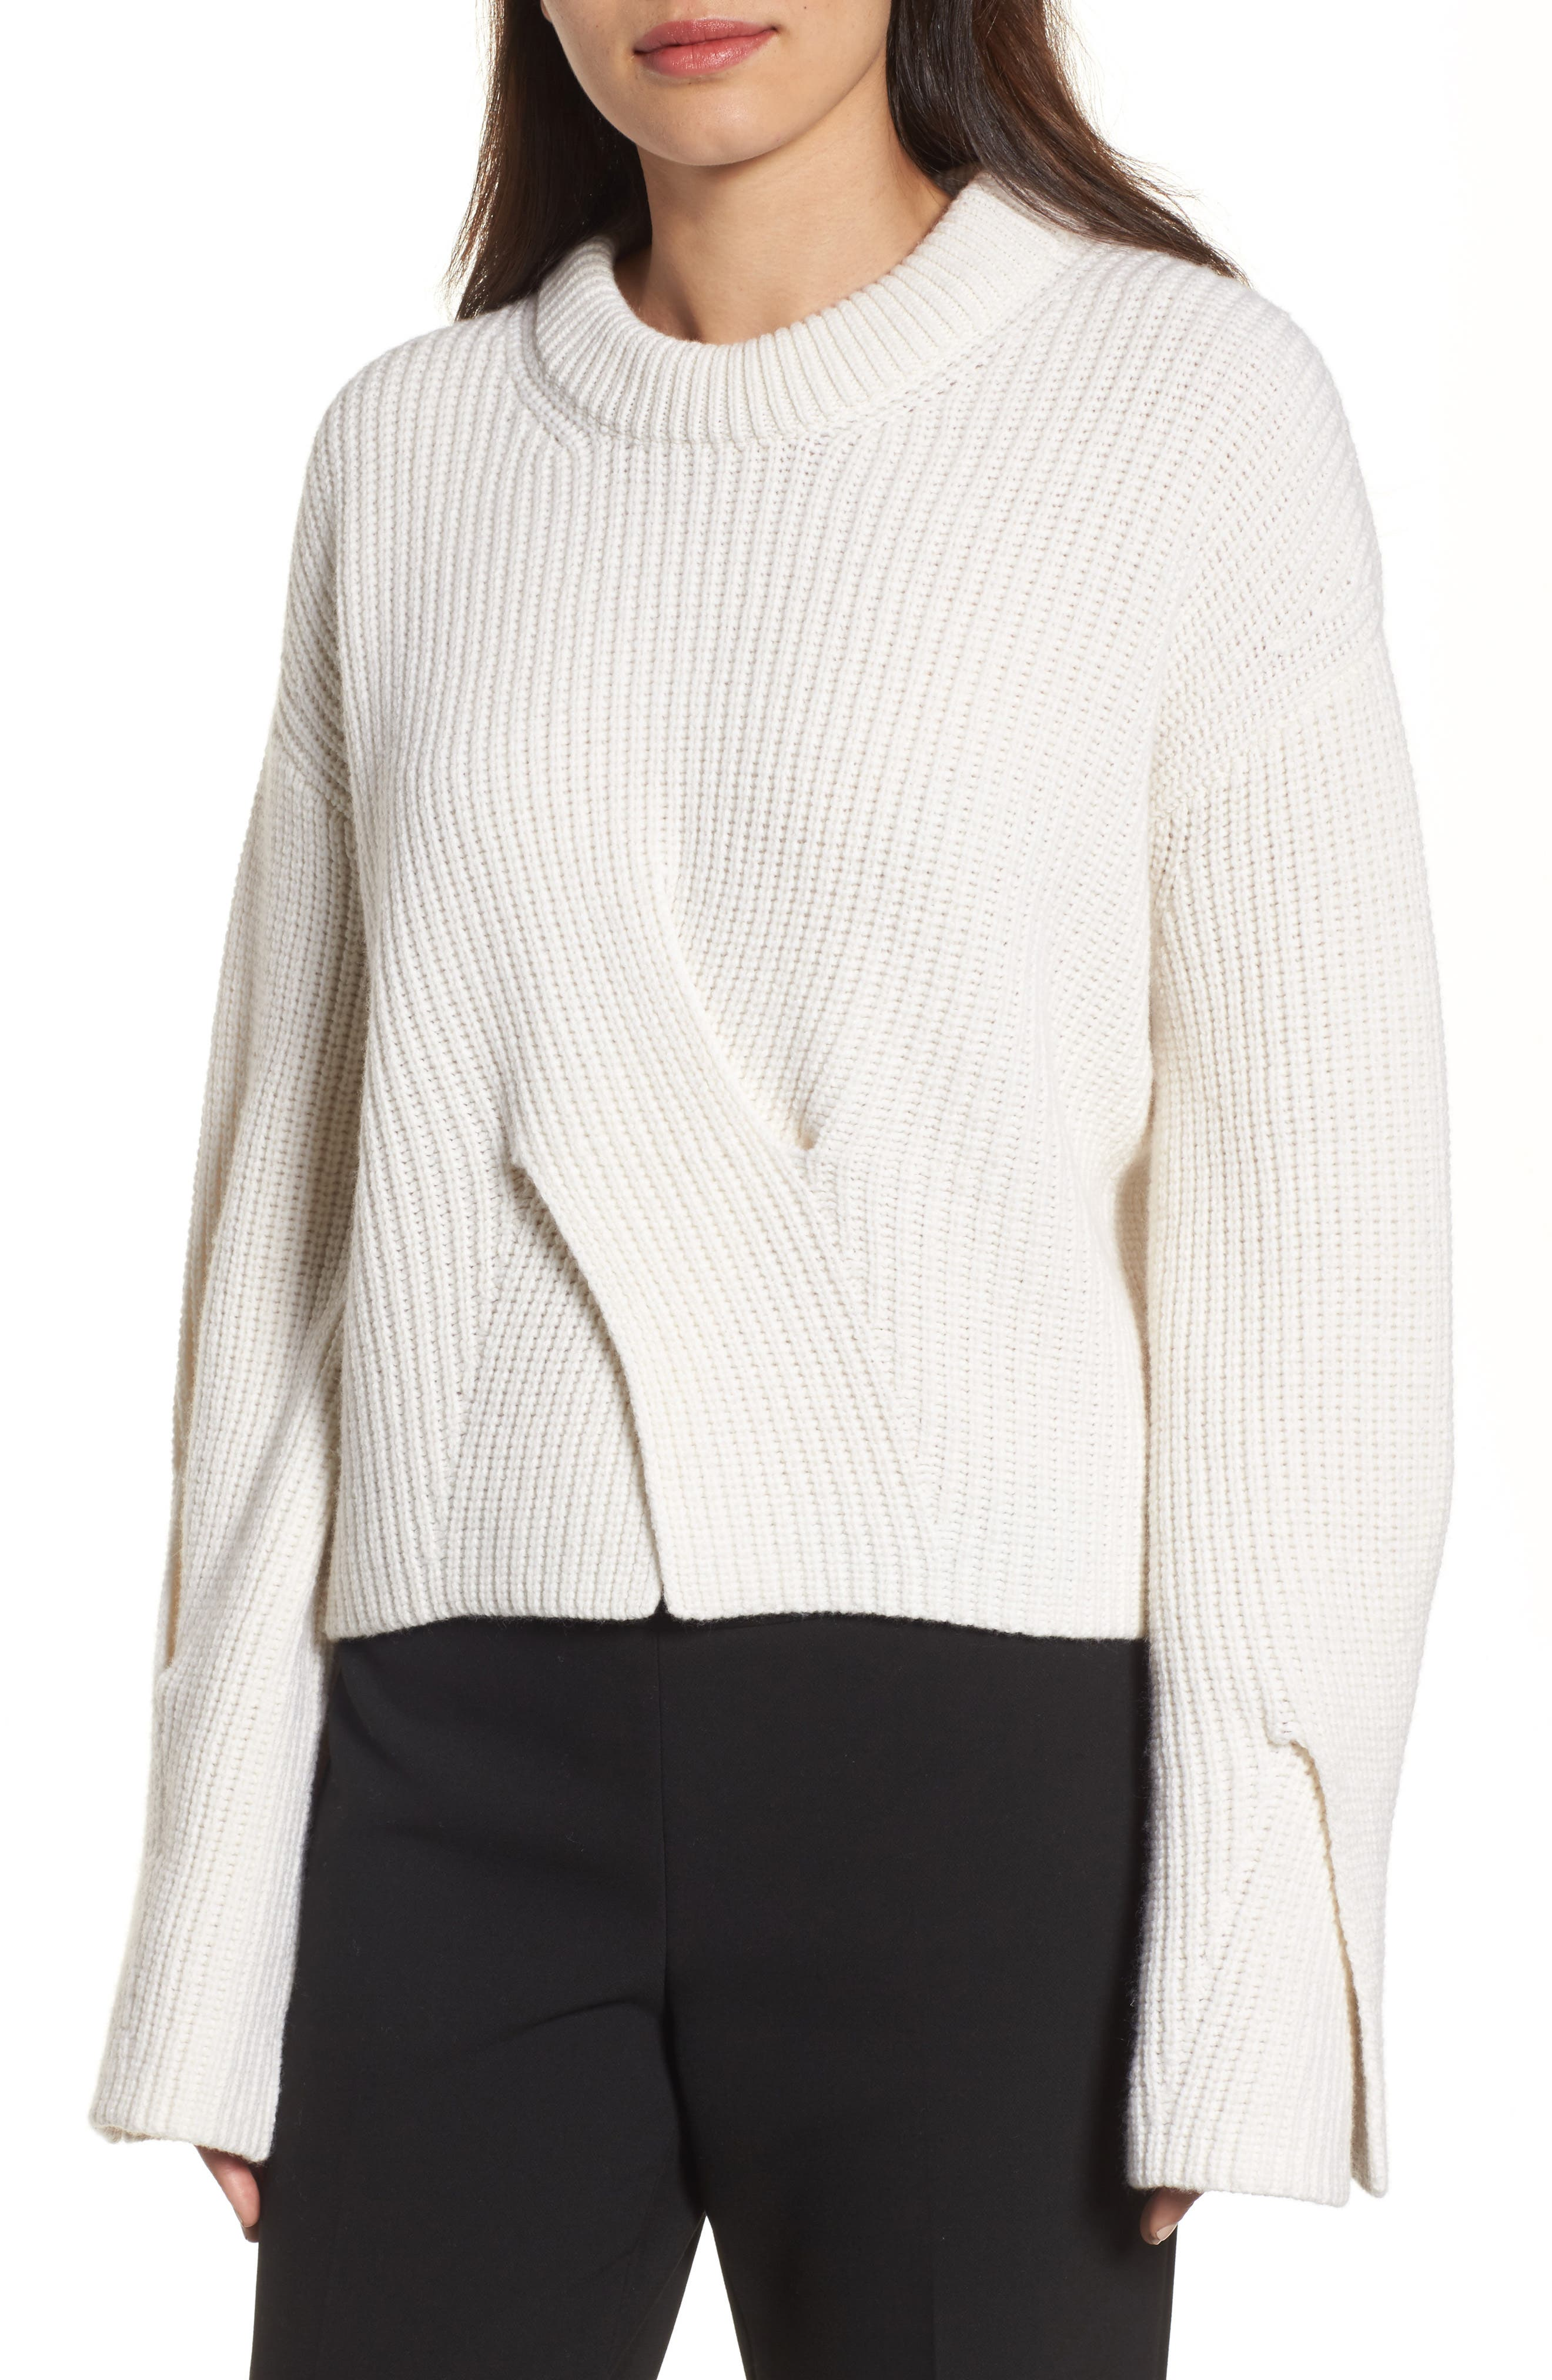 Fihra Wool Blend Sweater,                         Main,                         color, 252